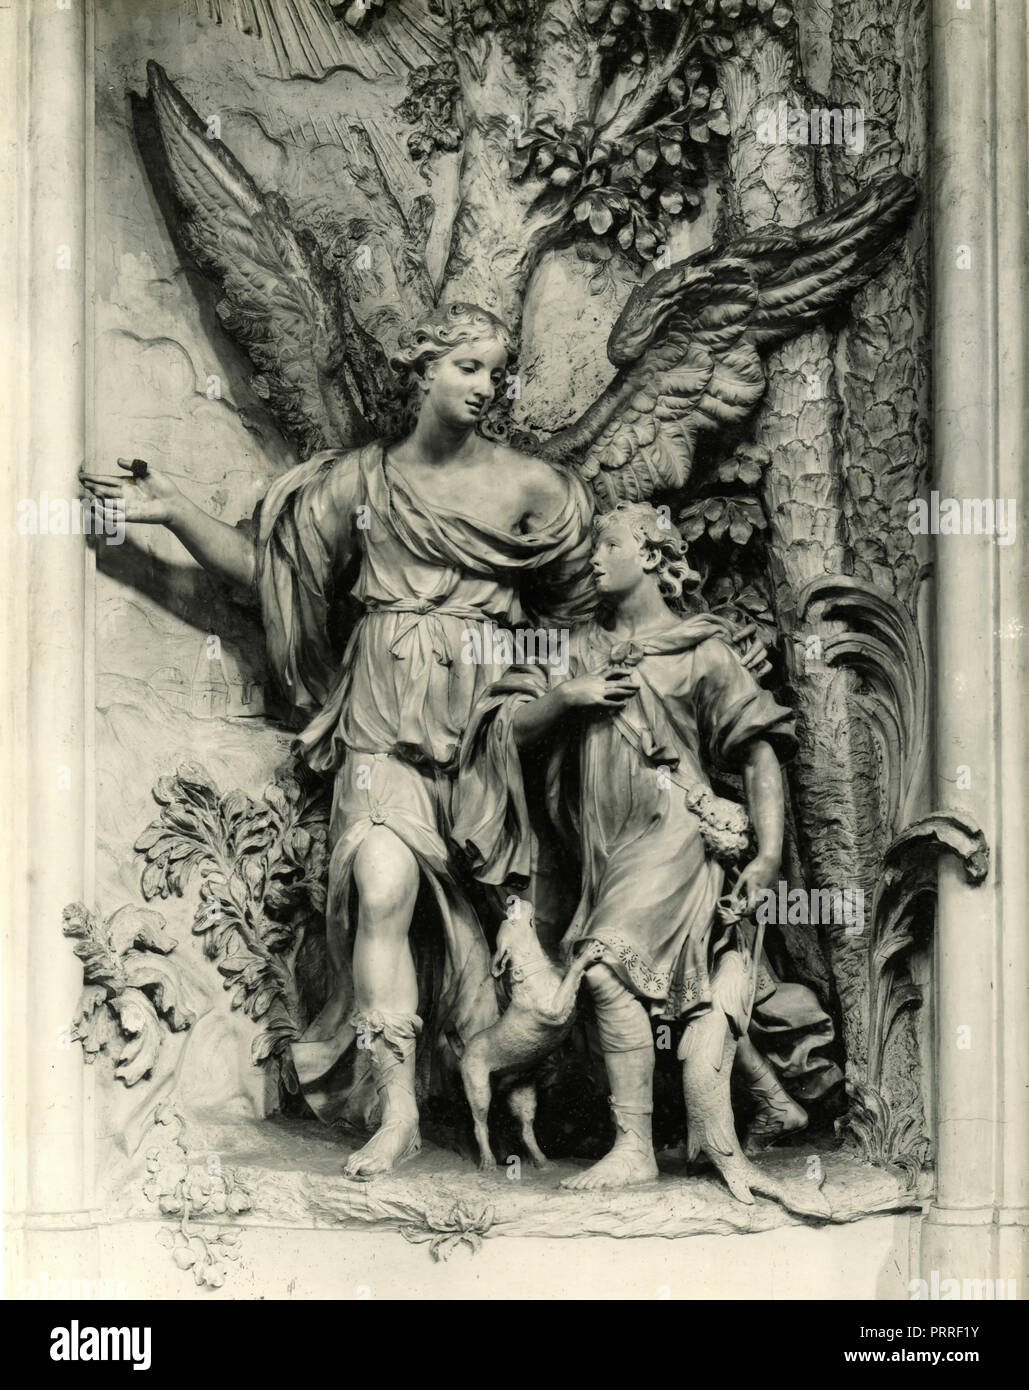 Tobiolo and Raphael Archangel, marble by Baratta, Italy 1930s - Stock Image